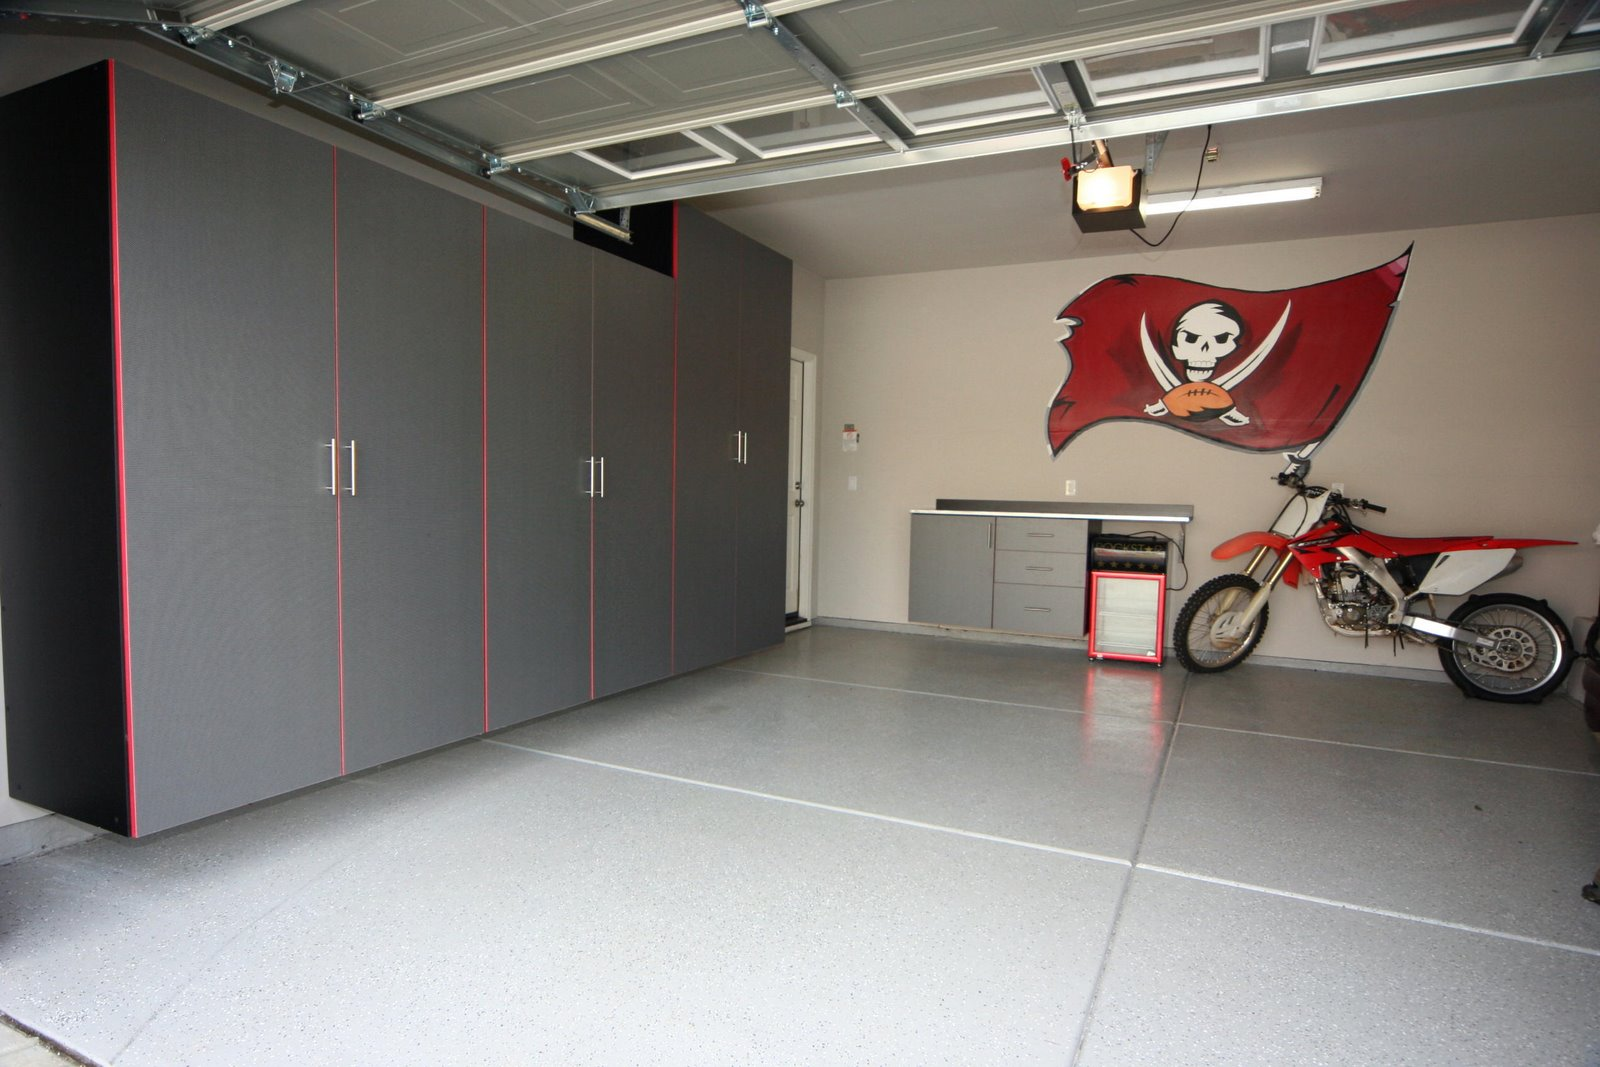 Best Garage Colors Design For Rustic Home Living : Cool Garage Colors Design Red Cross Cycle Pirates Logo